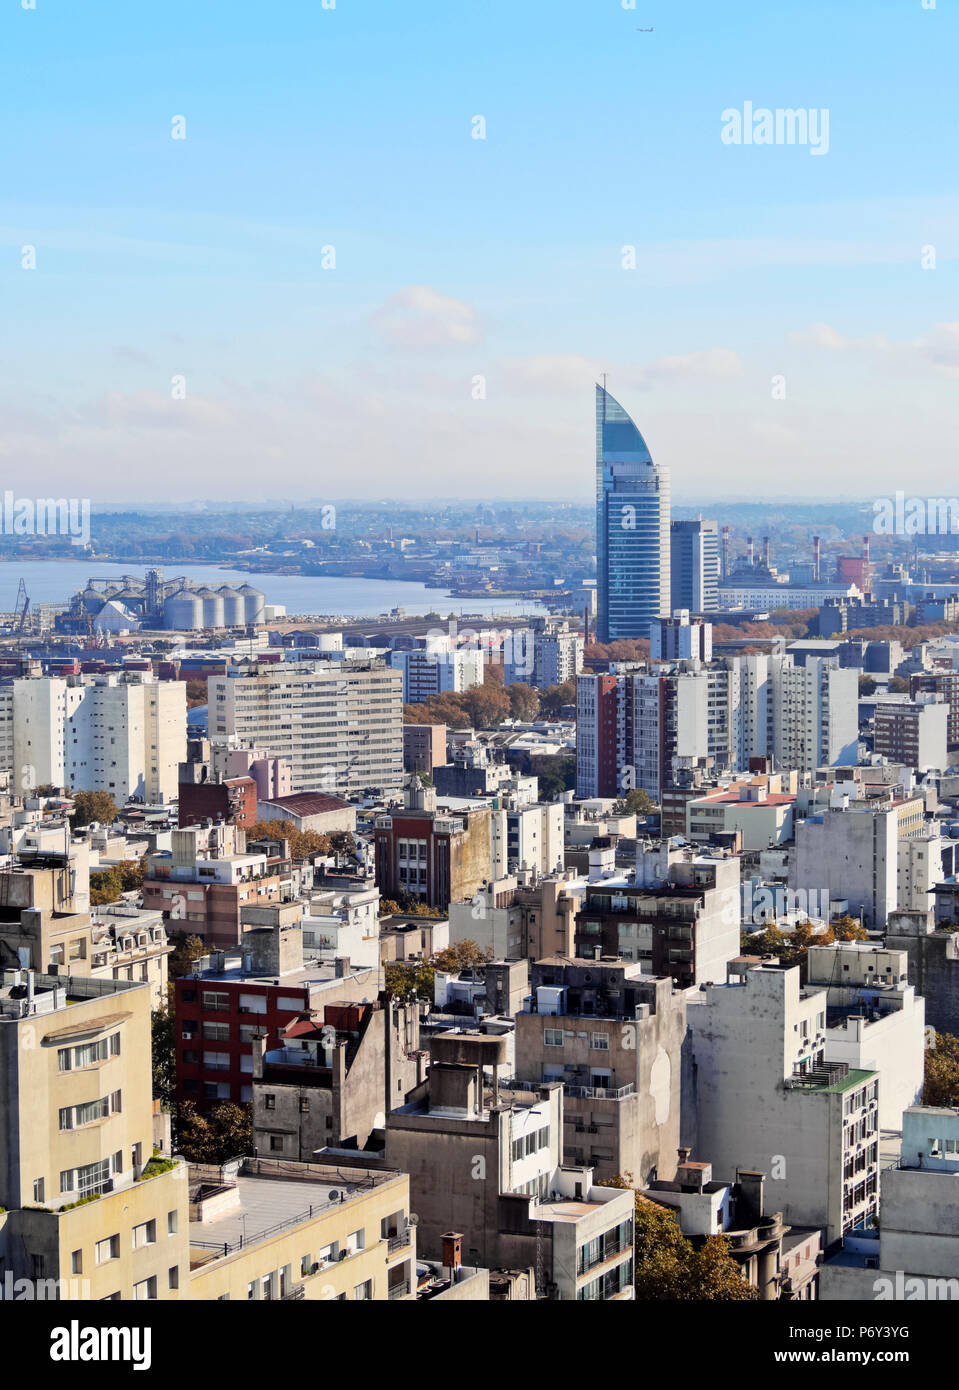 Uruguay, Montevideo, Cityscape viewed from the City Hall(Intendencia de Montevideo). Stock Photo